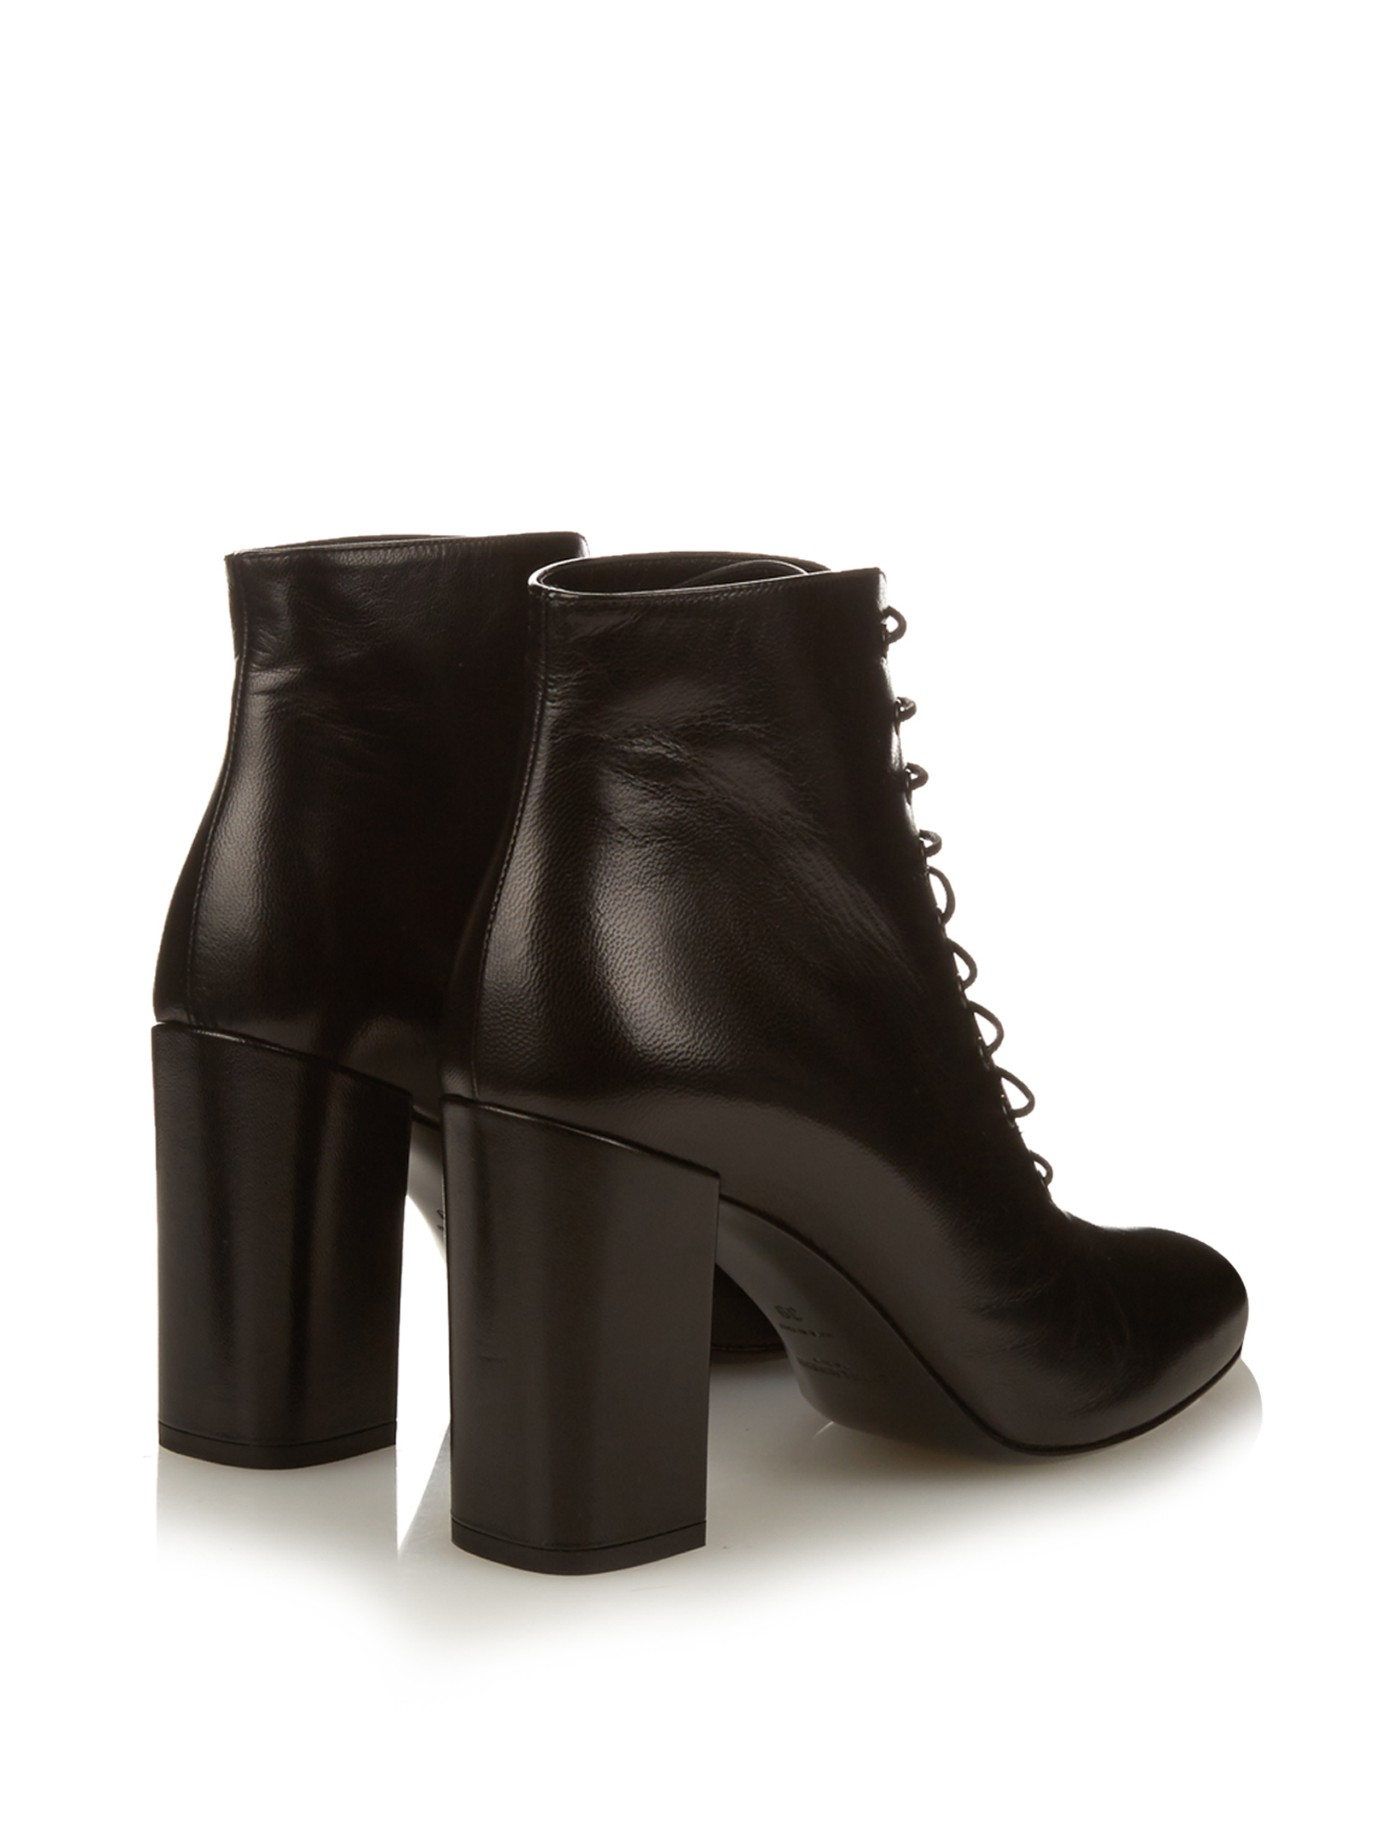 Saint laurent Babies Lace-up Leather Ankle Boots in Black | Lyst